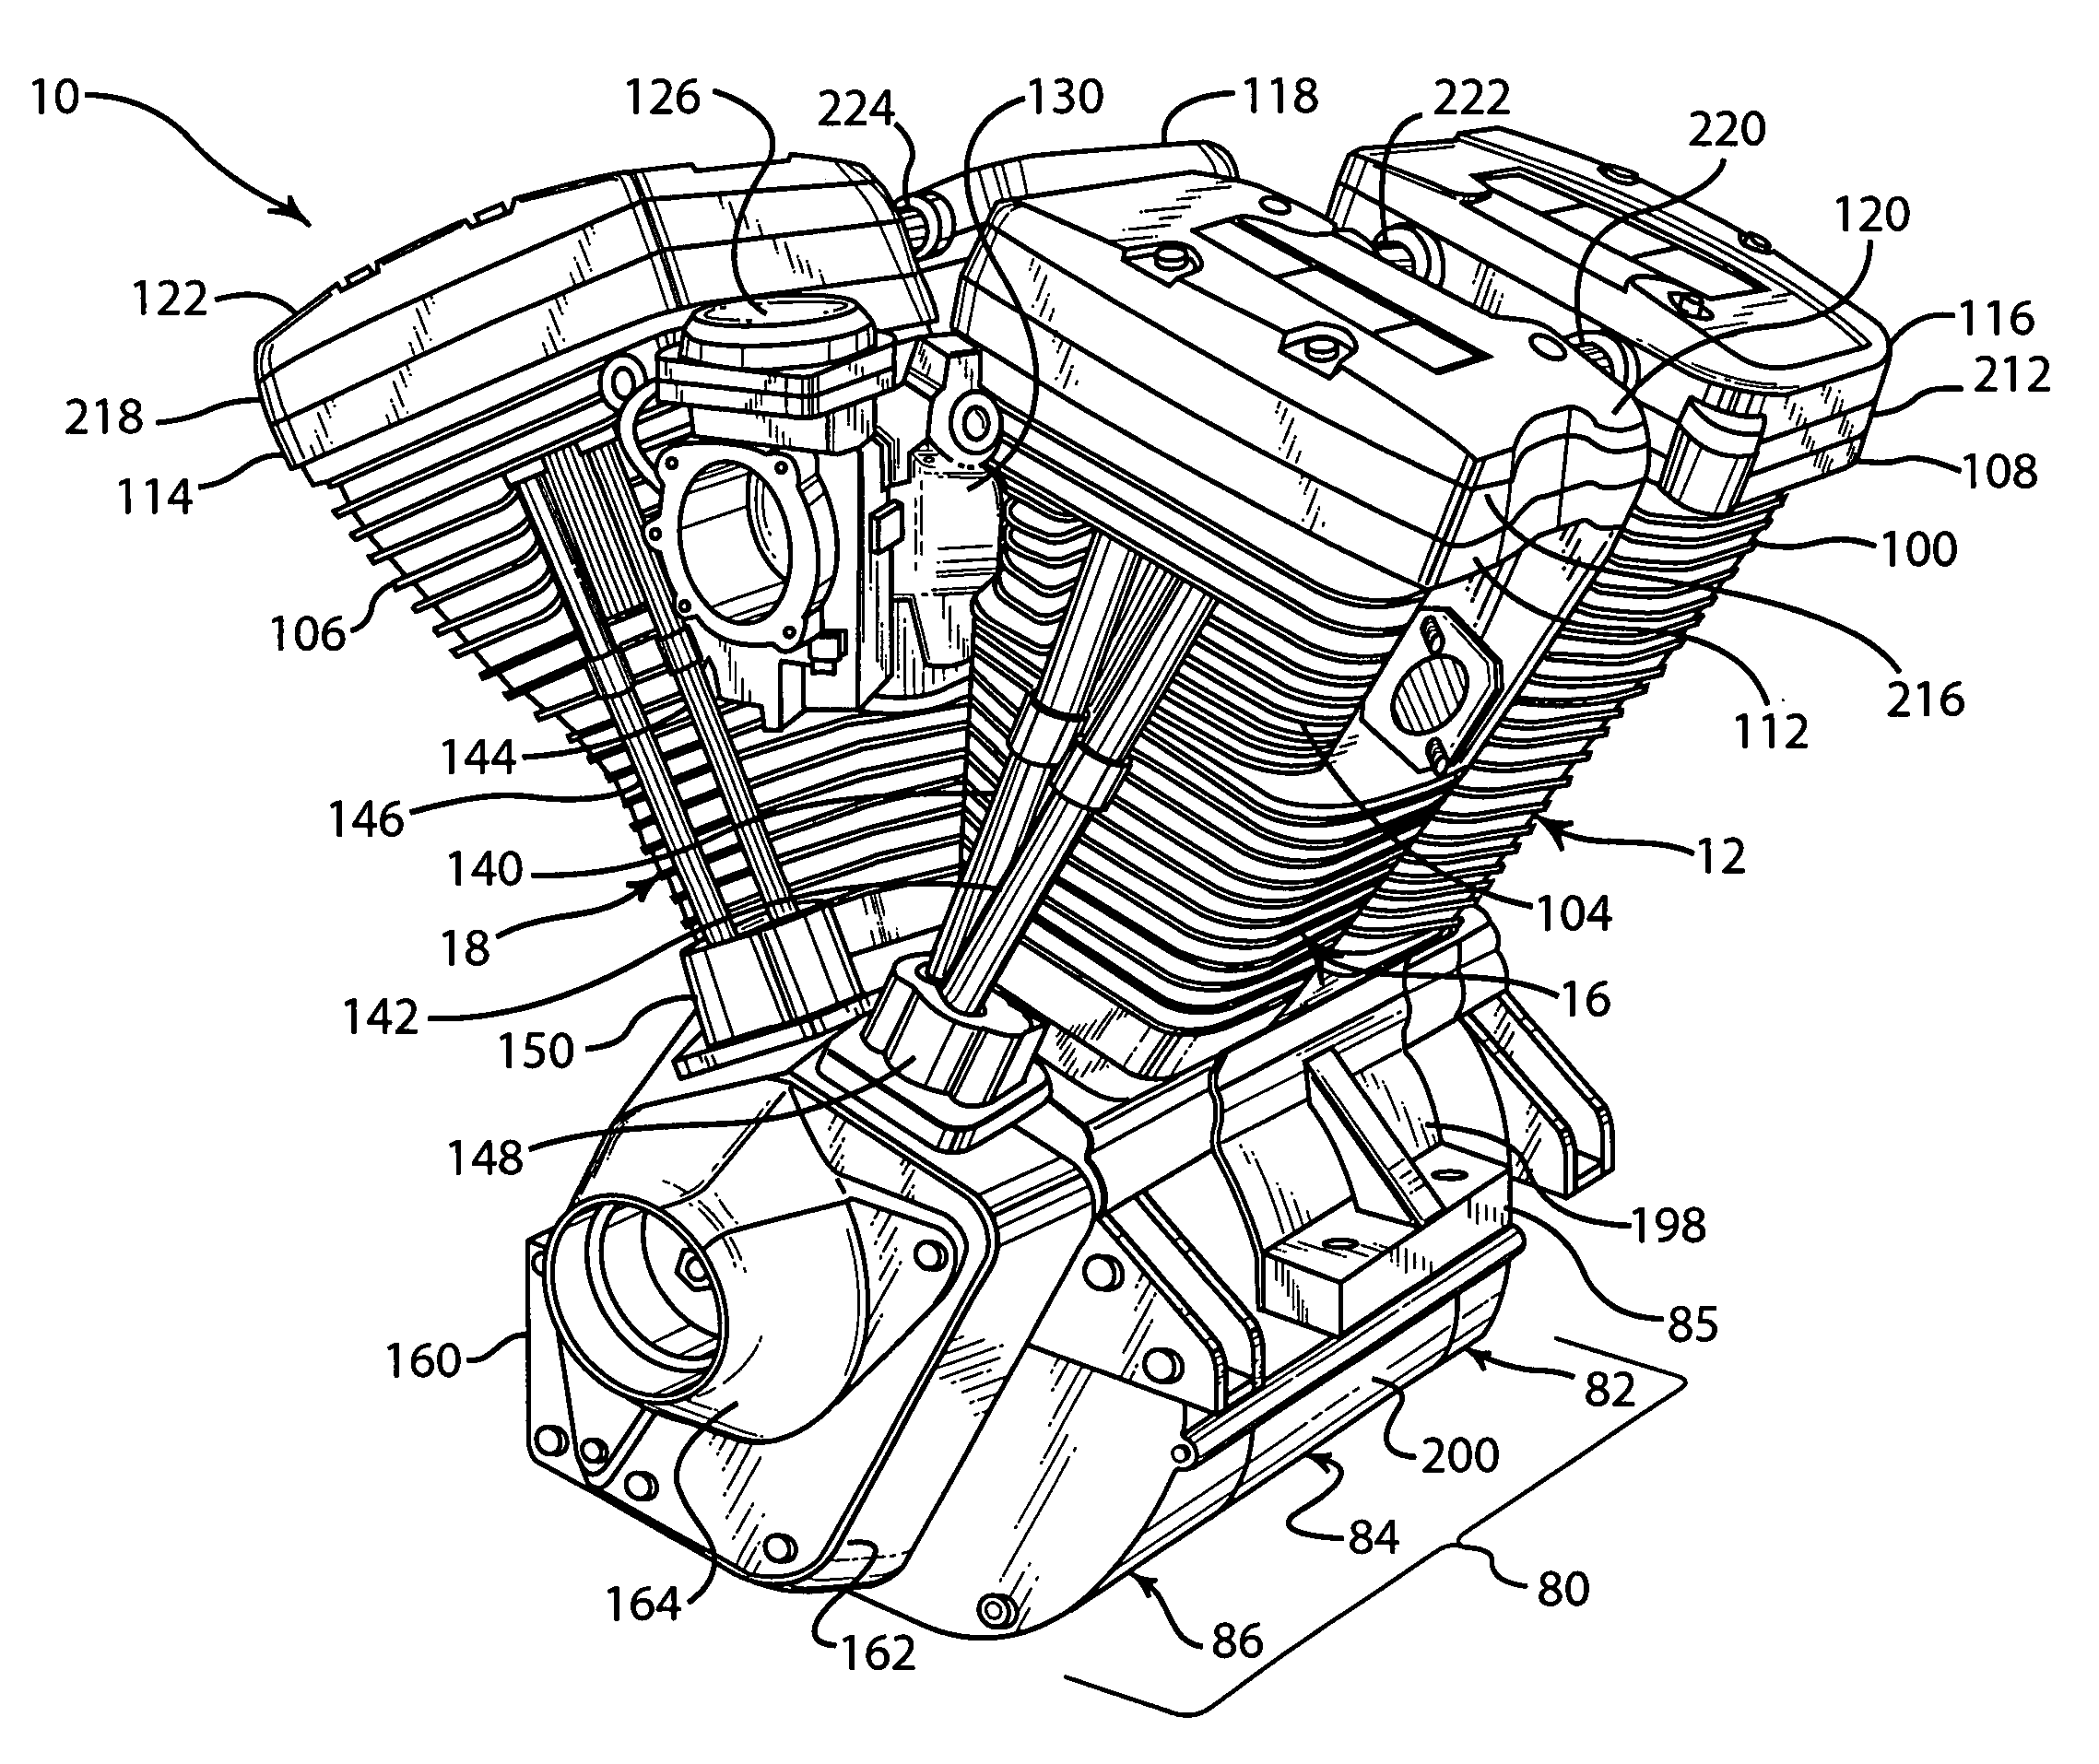 Patent Us7134407 - V-quad Engine And Method Of Constructing Same